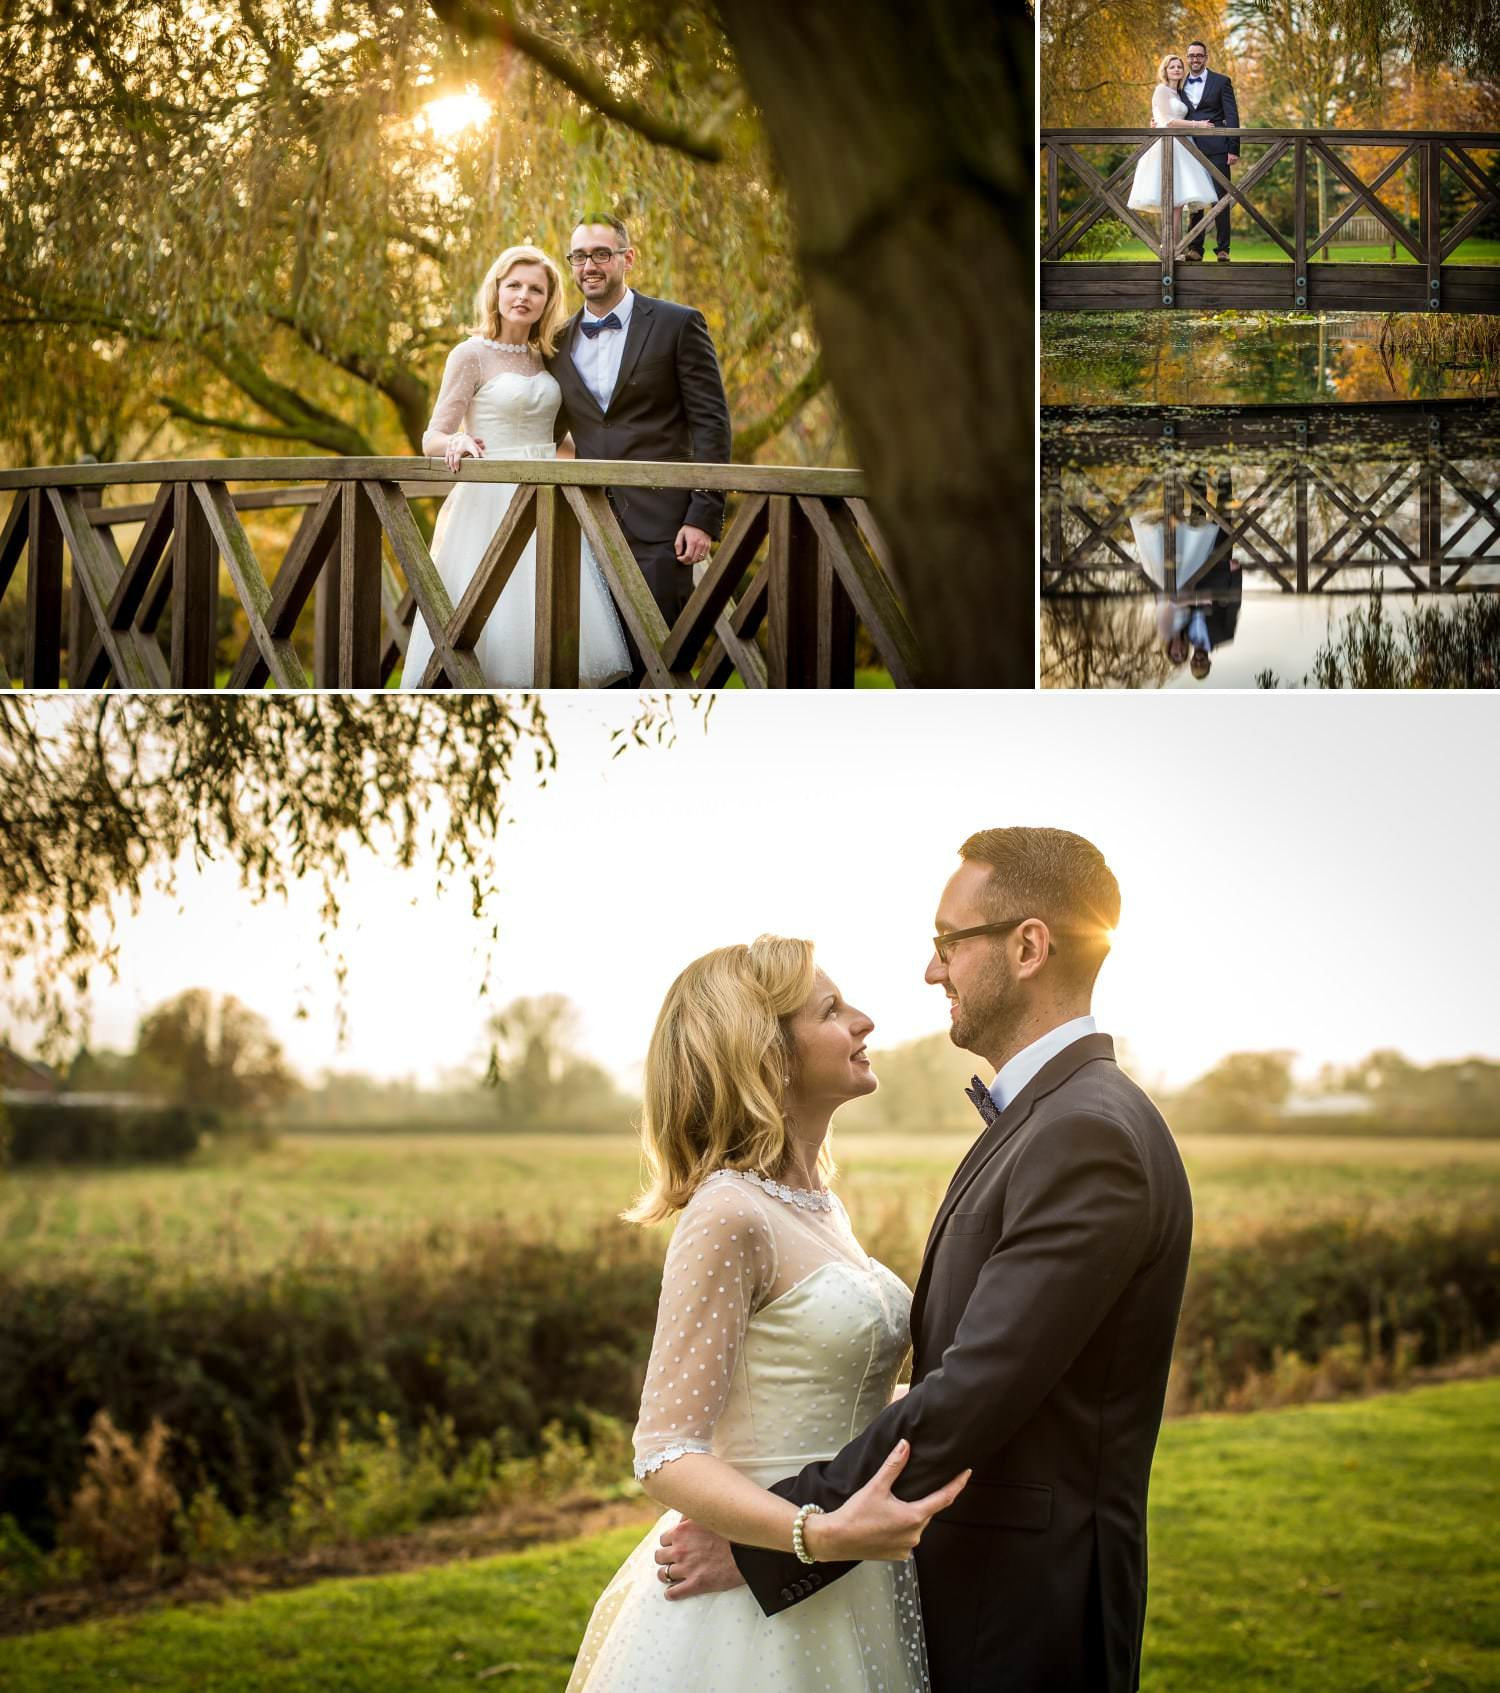 Wedding Photography in the grounds of Chester venue Grosvenor Pulford